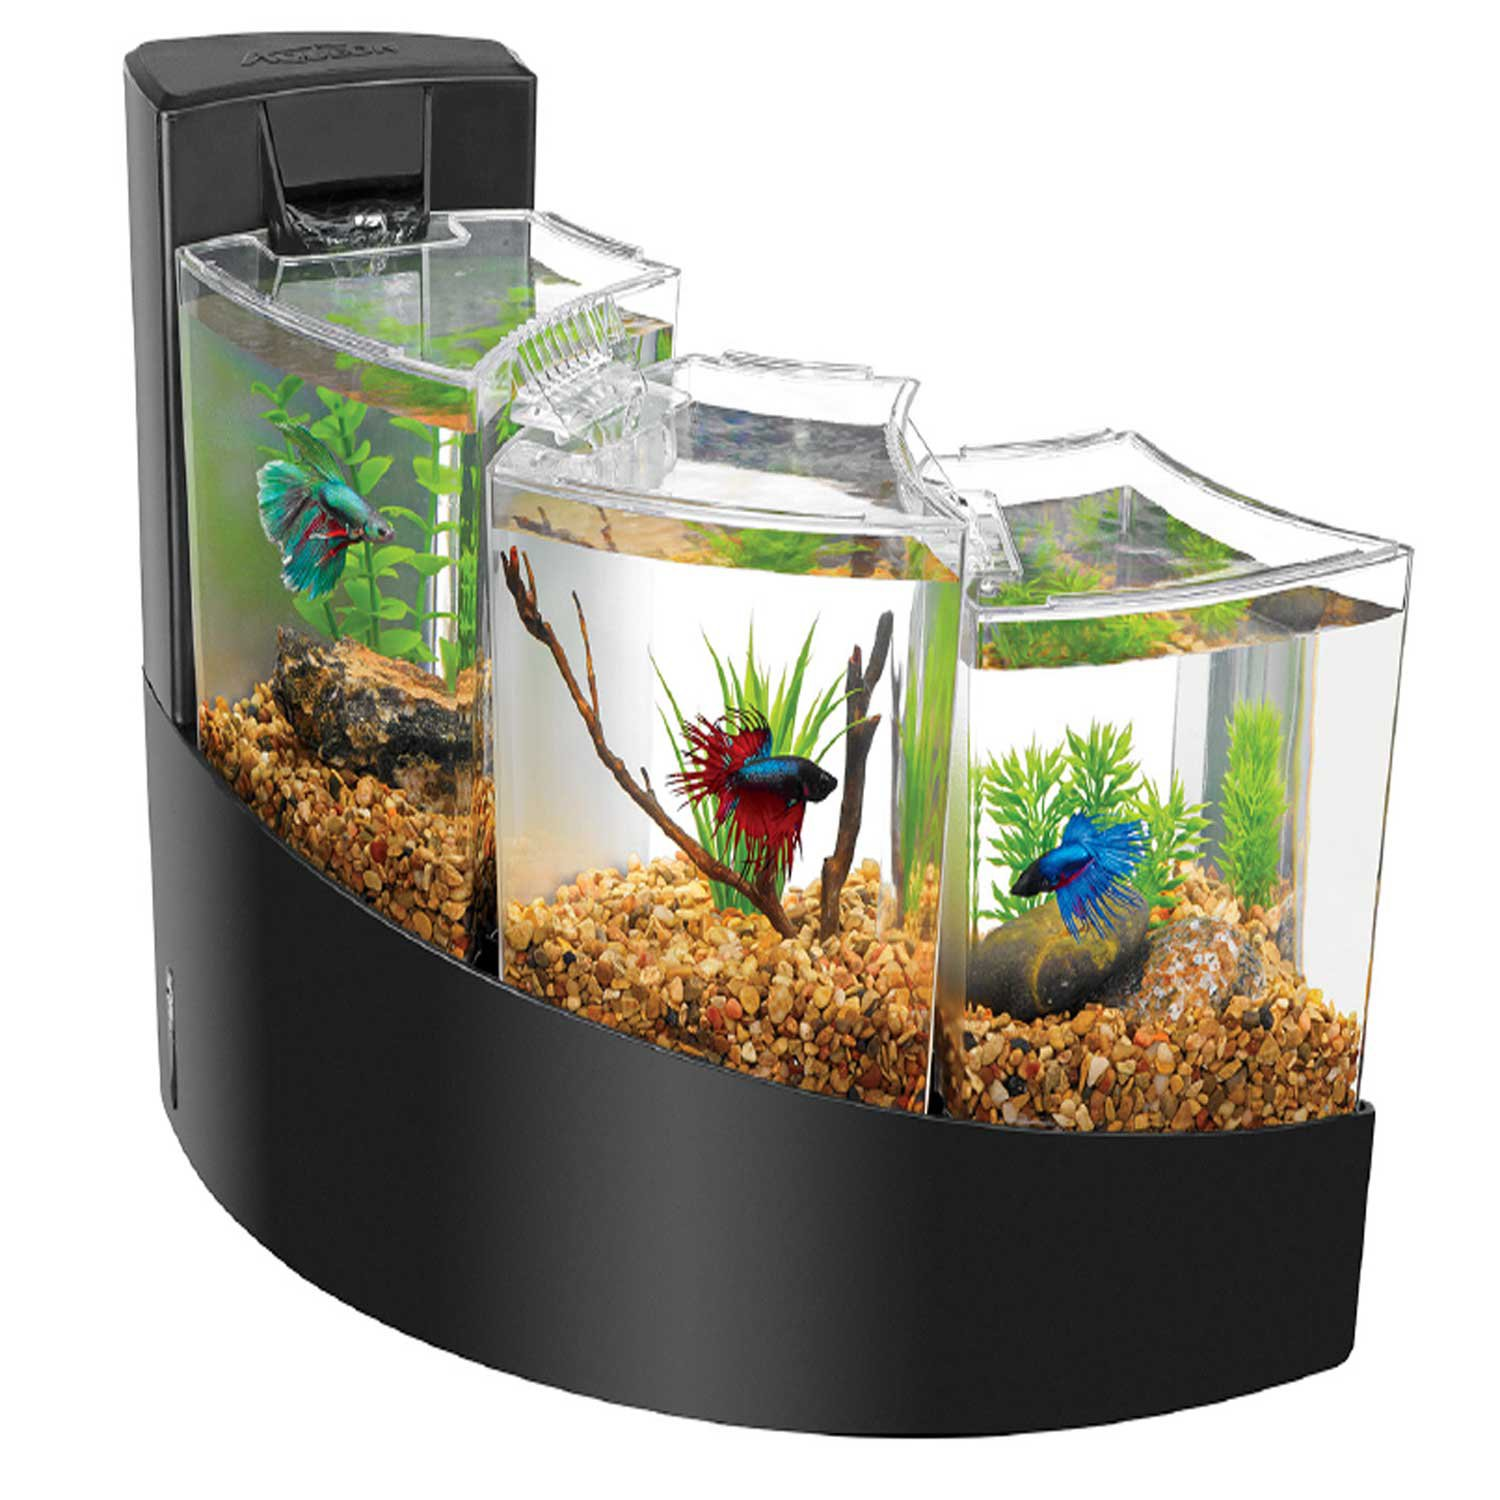 Aqueon glass aqueon kit betta falls black from for Betta fish tanks petsmart